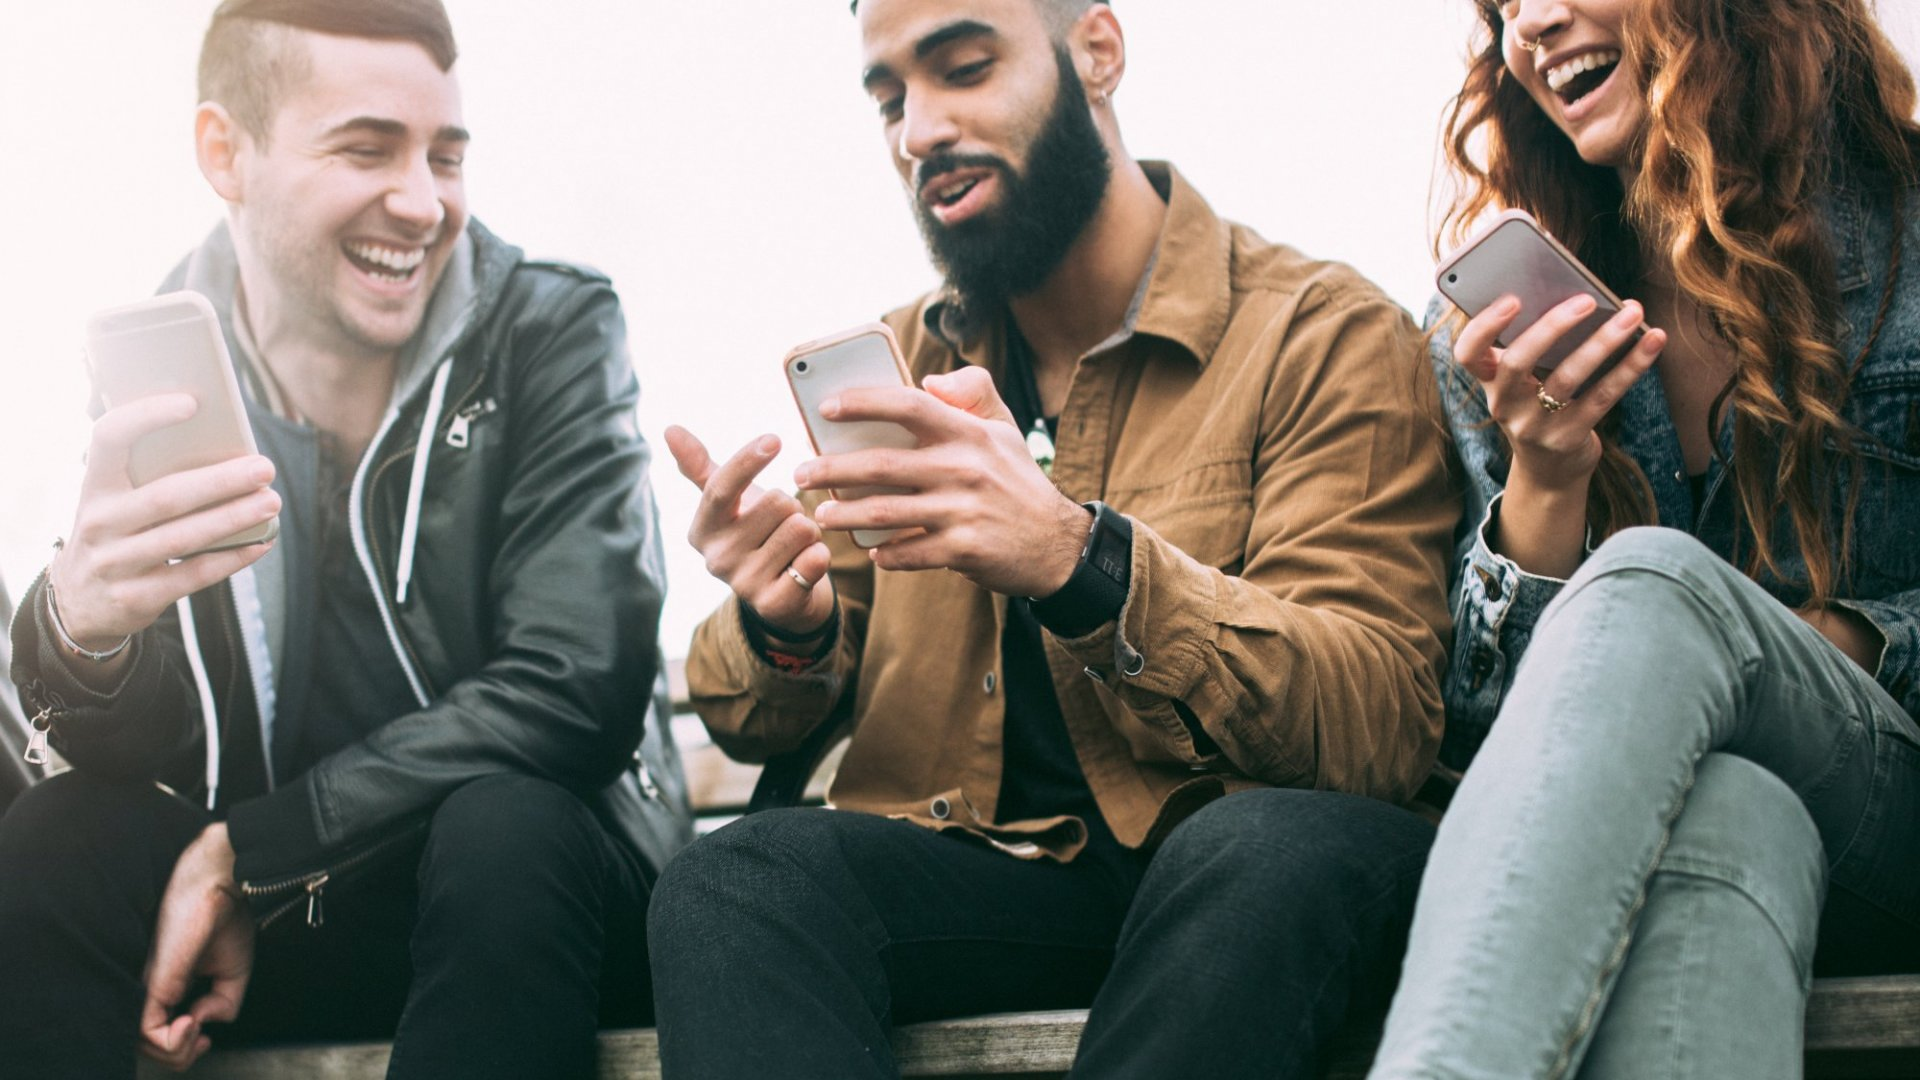 The 1 Thing That Will Attract Millennials to Your Brand